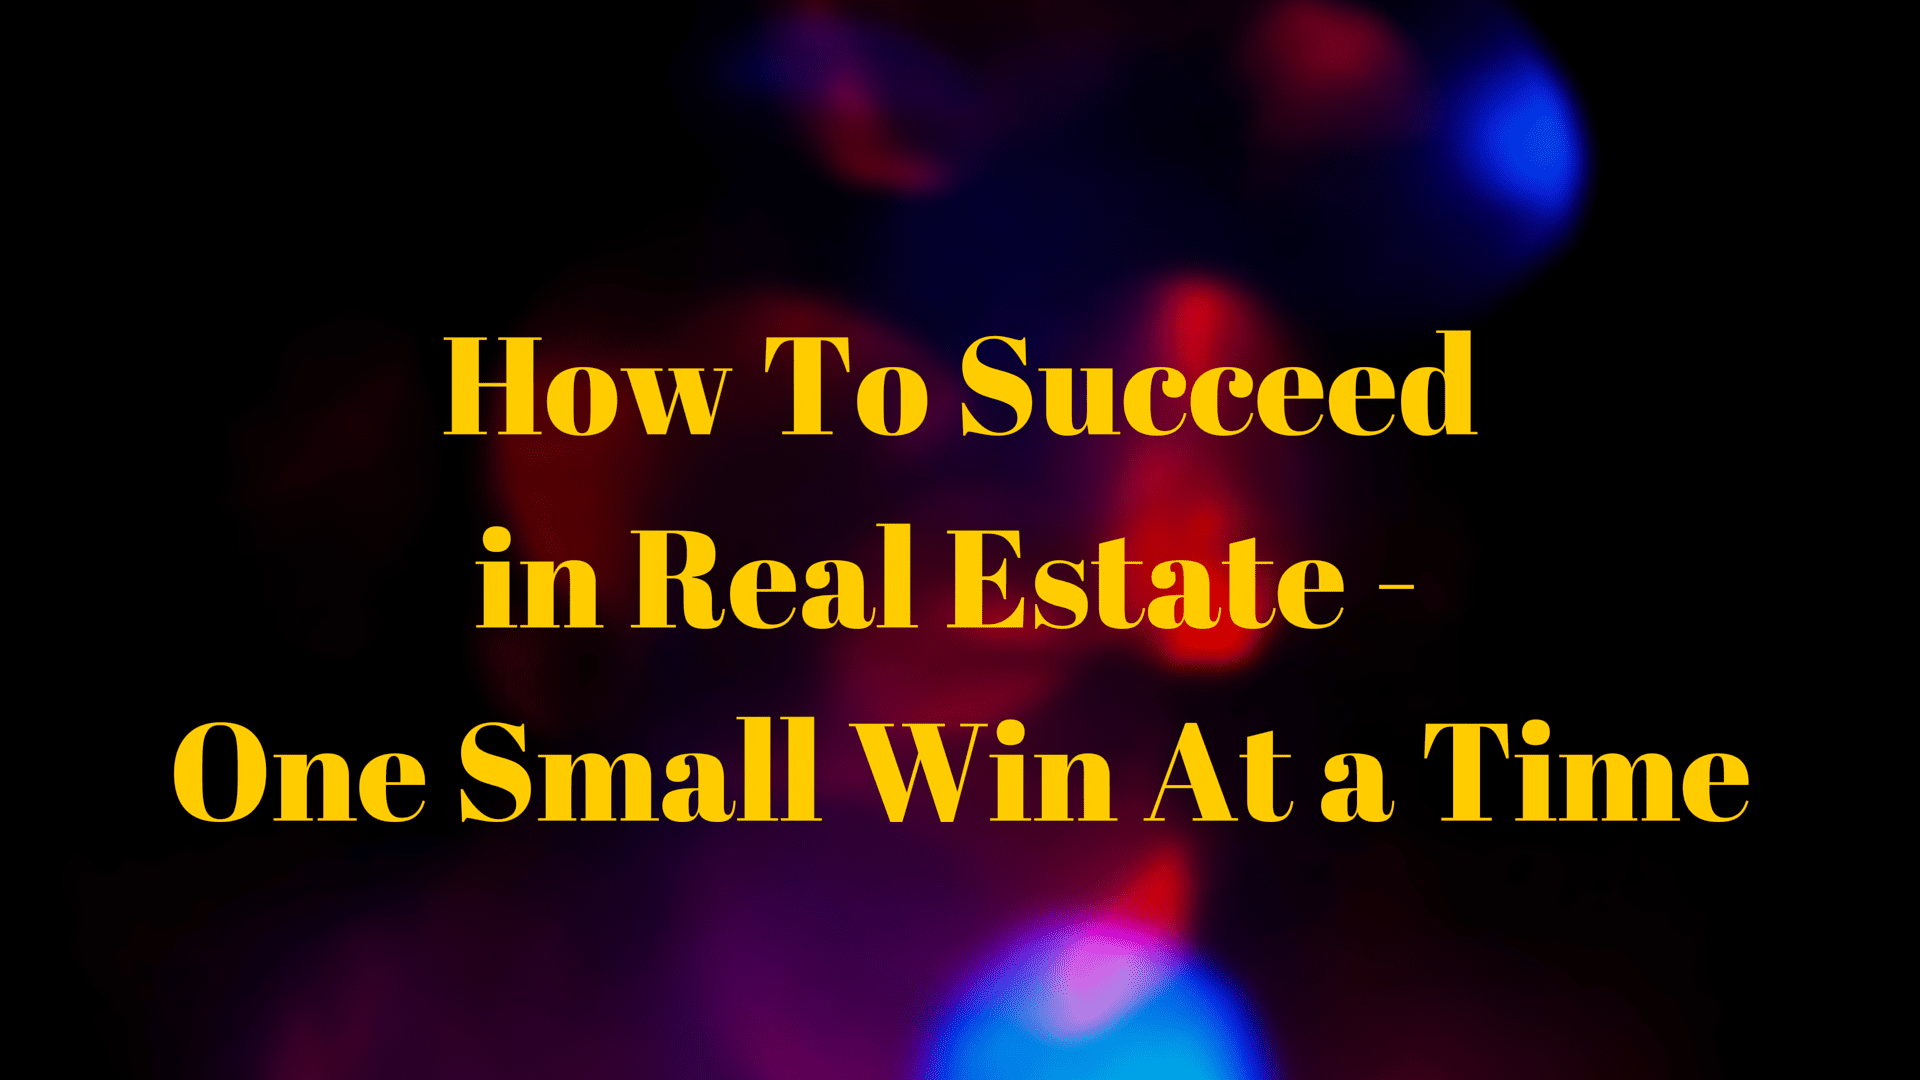 How To Succeed in Real Estate – One Small Win At a Time